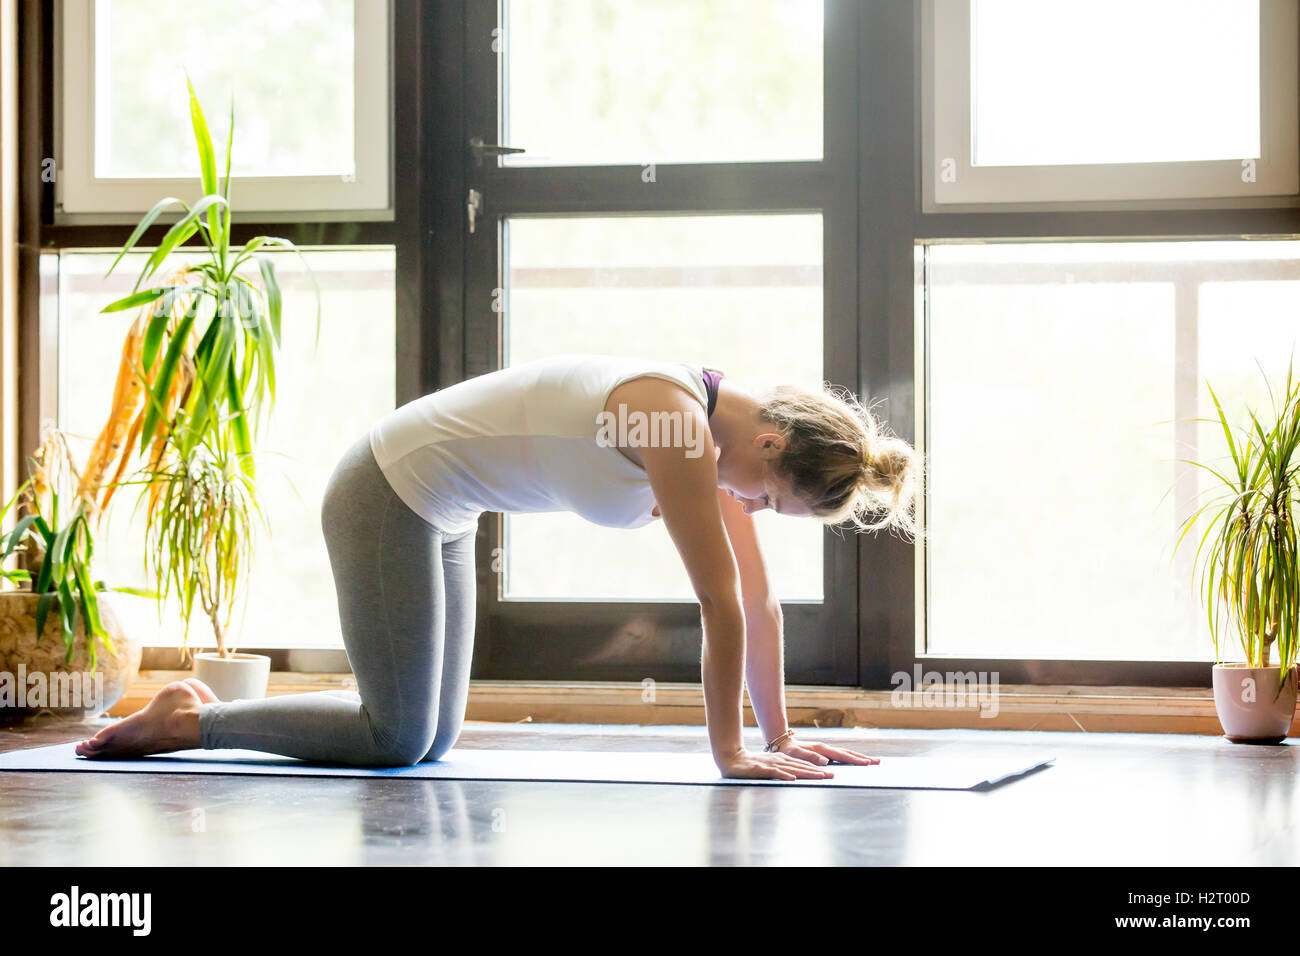 Yoga at home: Cat Pose - Stock Image